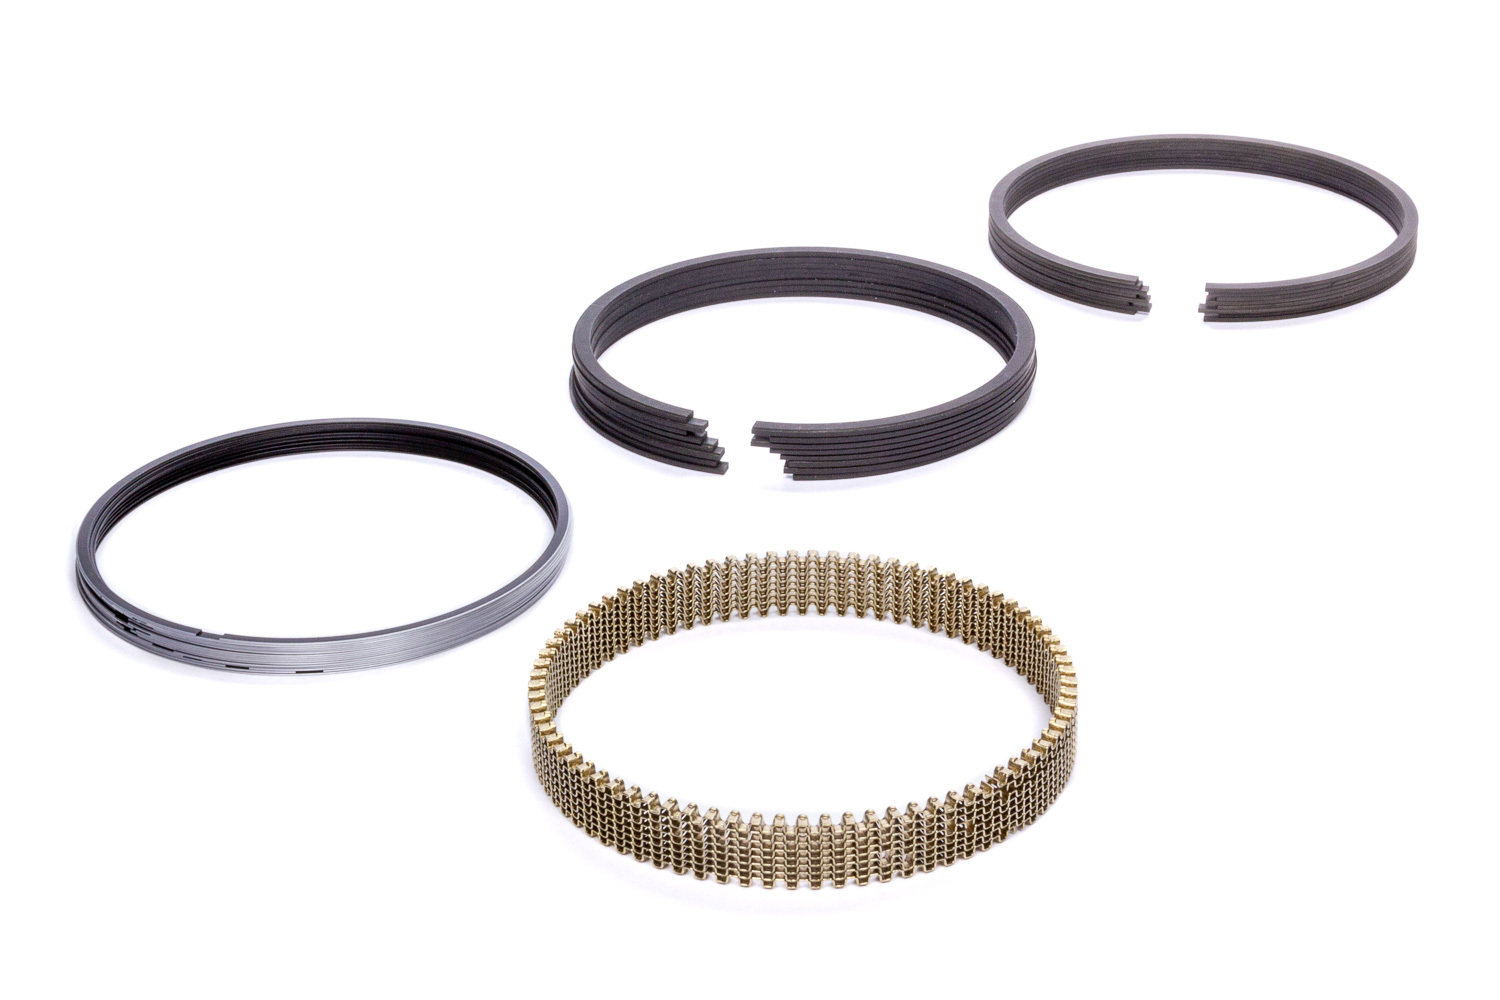 Hastings SN9065035 Piston Rings, 4.035 in Bore, 1.2 x 1.5 x 3.0 mm Thick, Standard Tension, Stainless Steel, 8 Cylinder, Kit